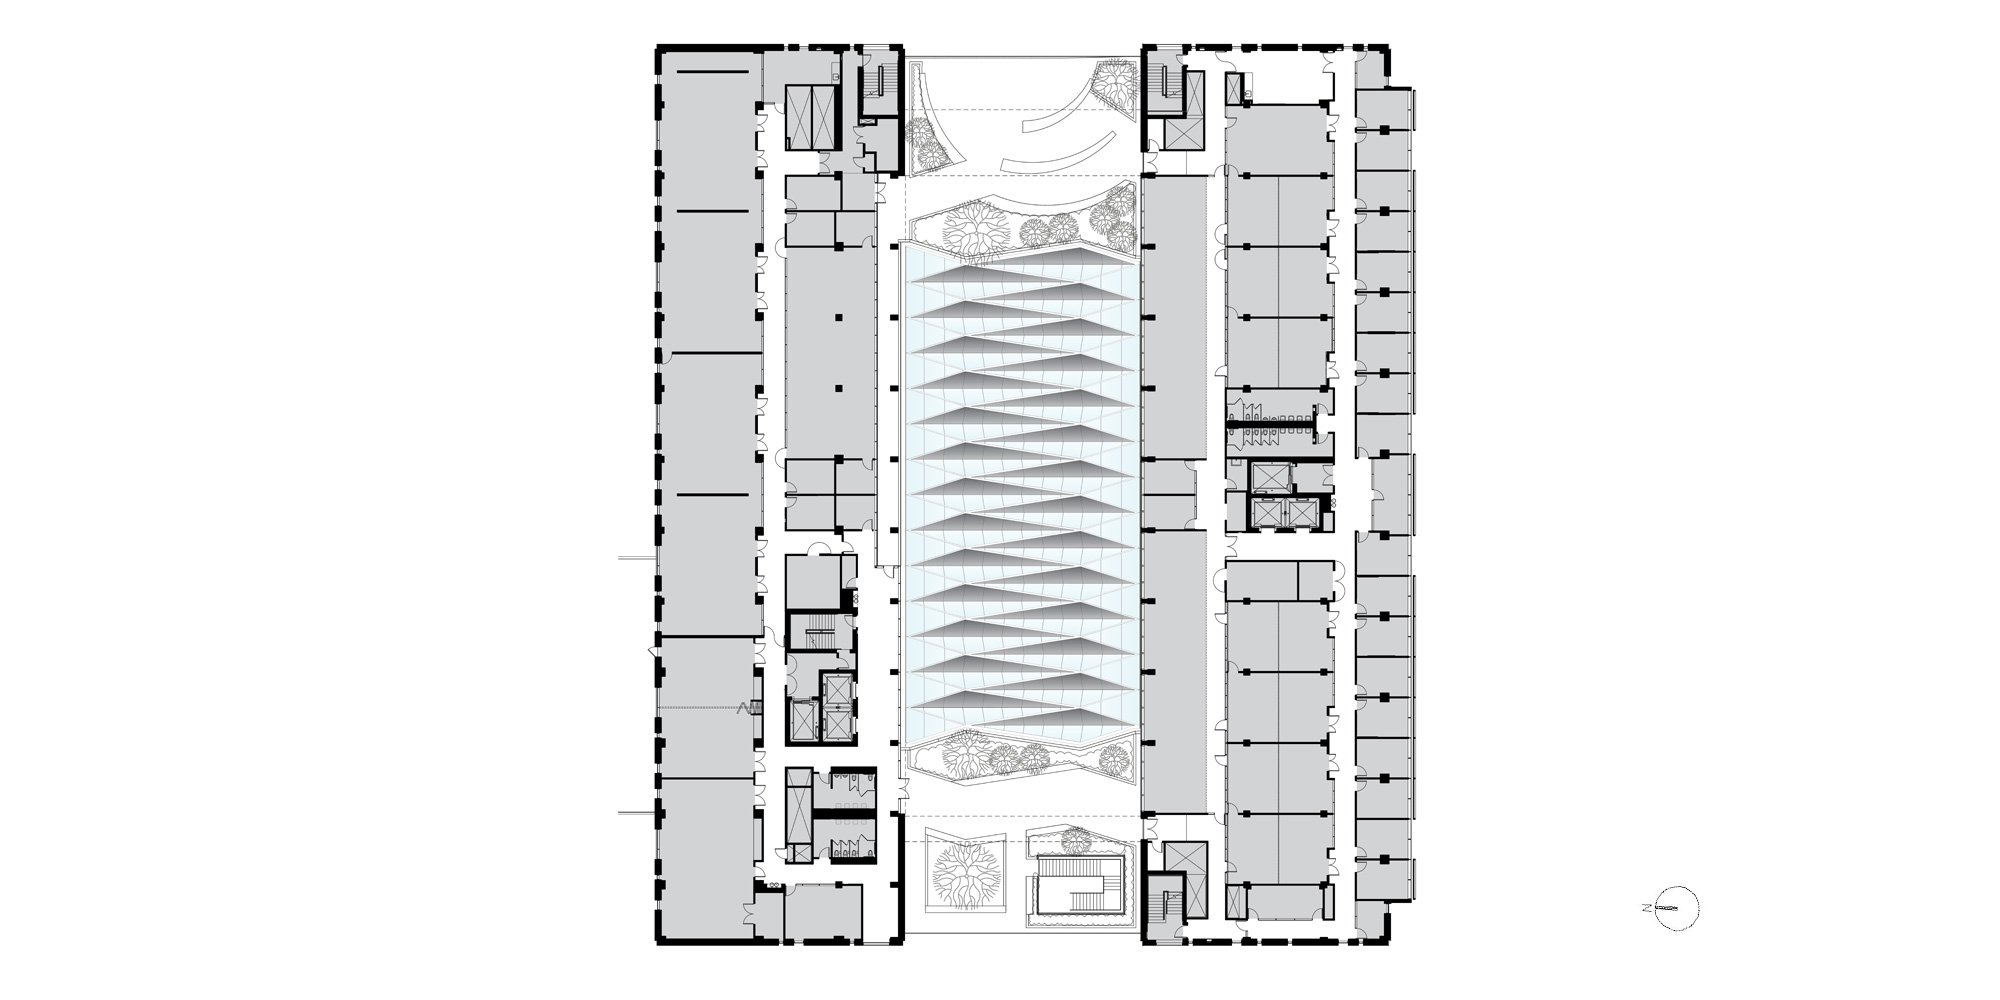 Level 3 plan © Ennead Architects